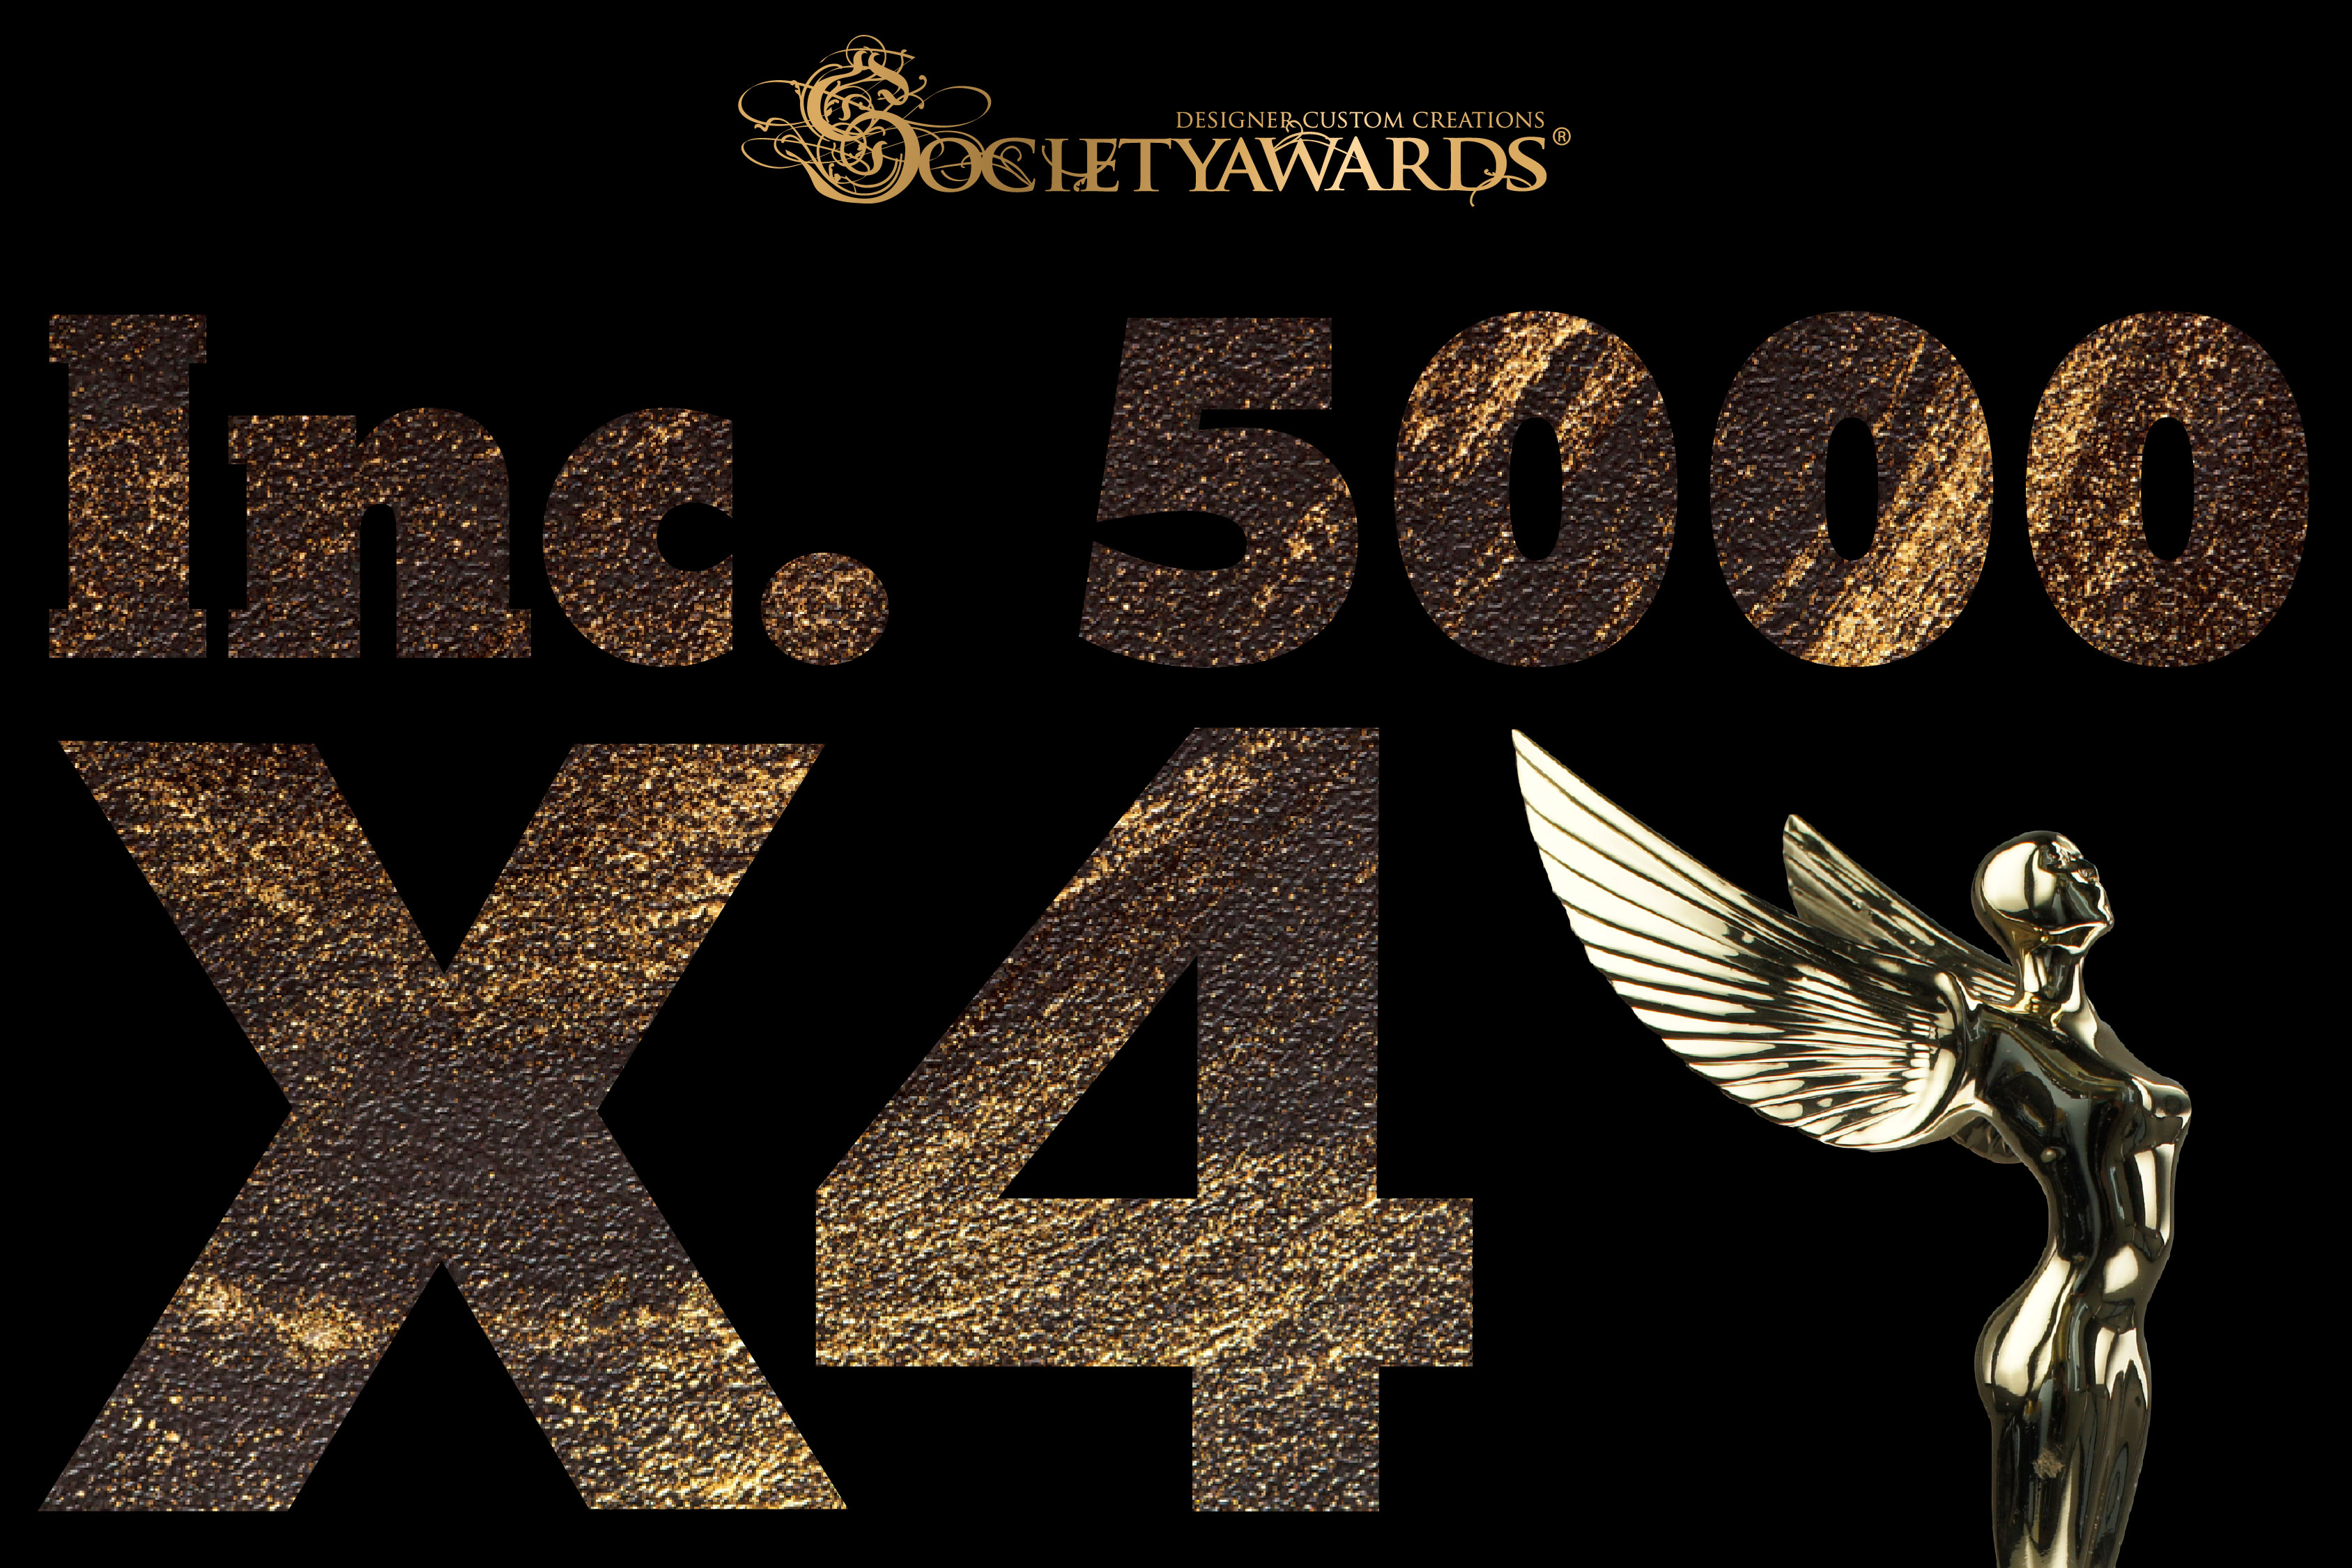 Society Angel Award,  logo, text reads: 'Inc. 5000 X4'